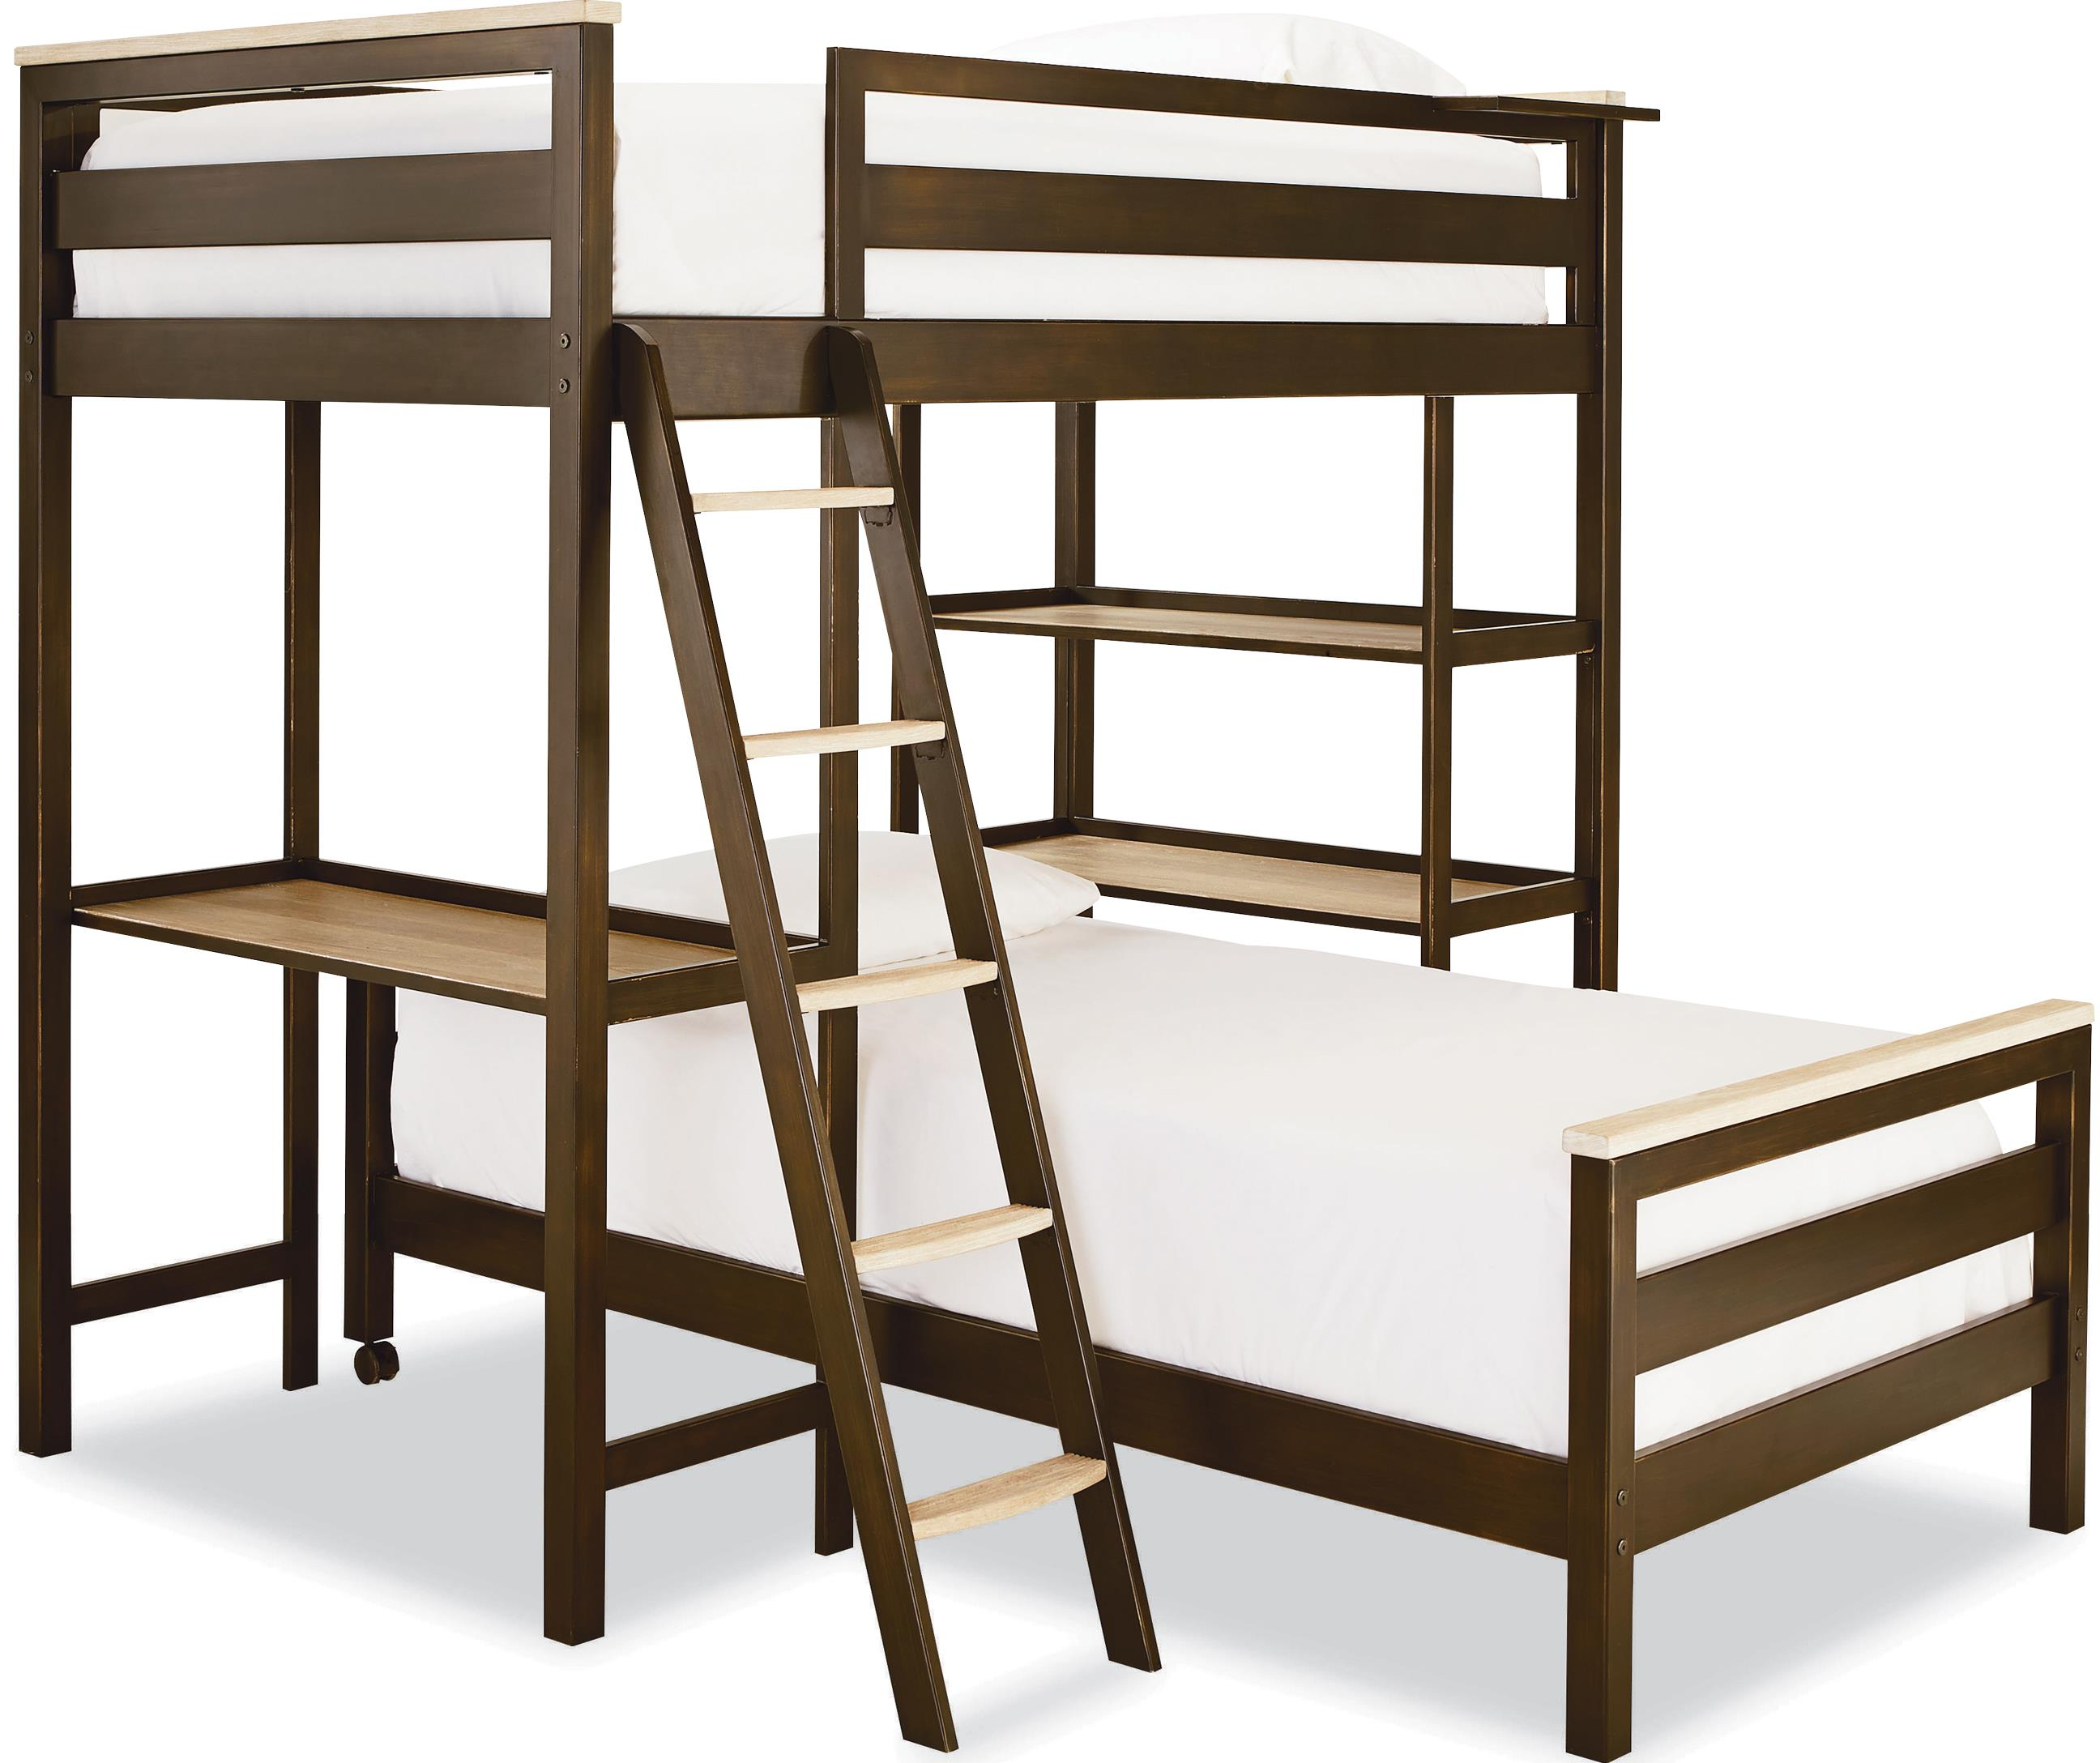 Smartstuff #myRoom Twin Metal Loft Bunk Bed - Item Number: 5321630